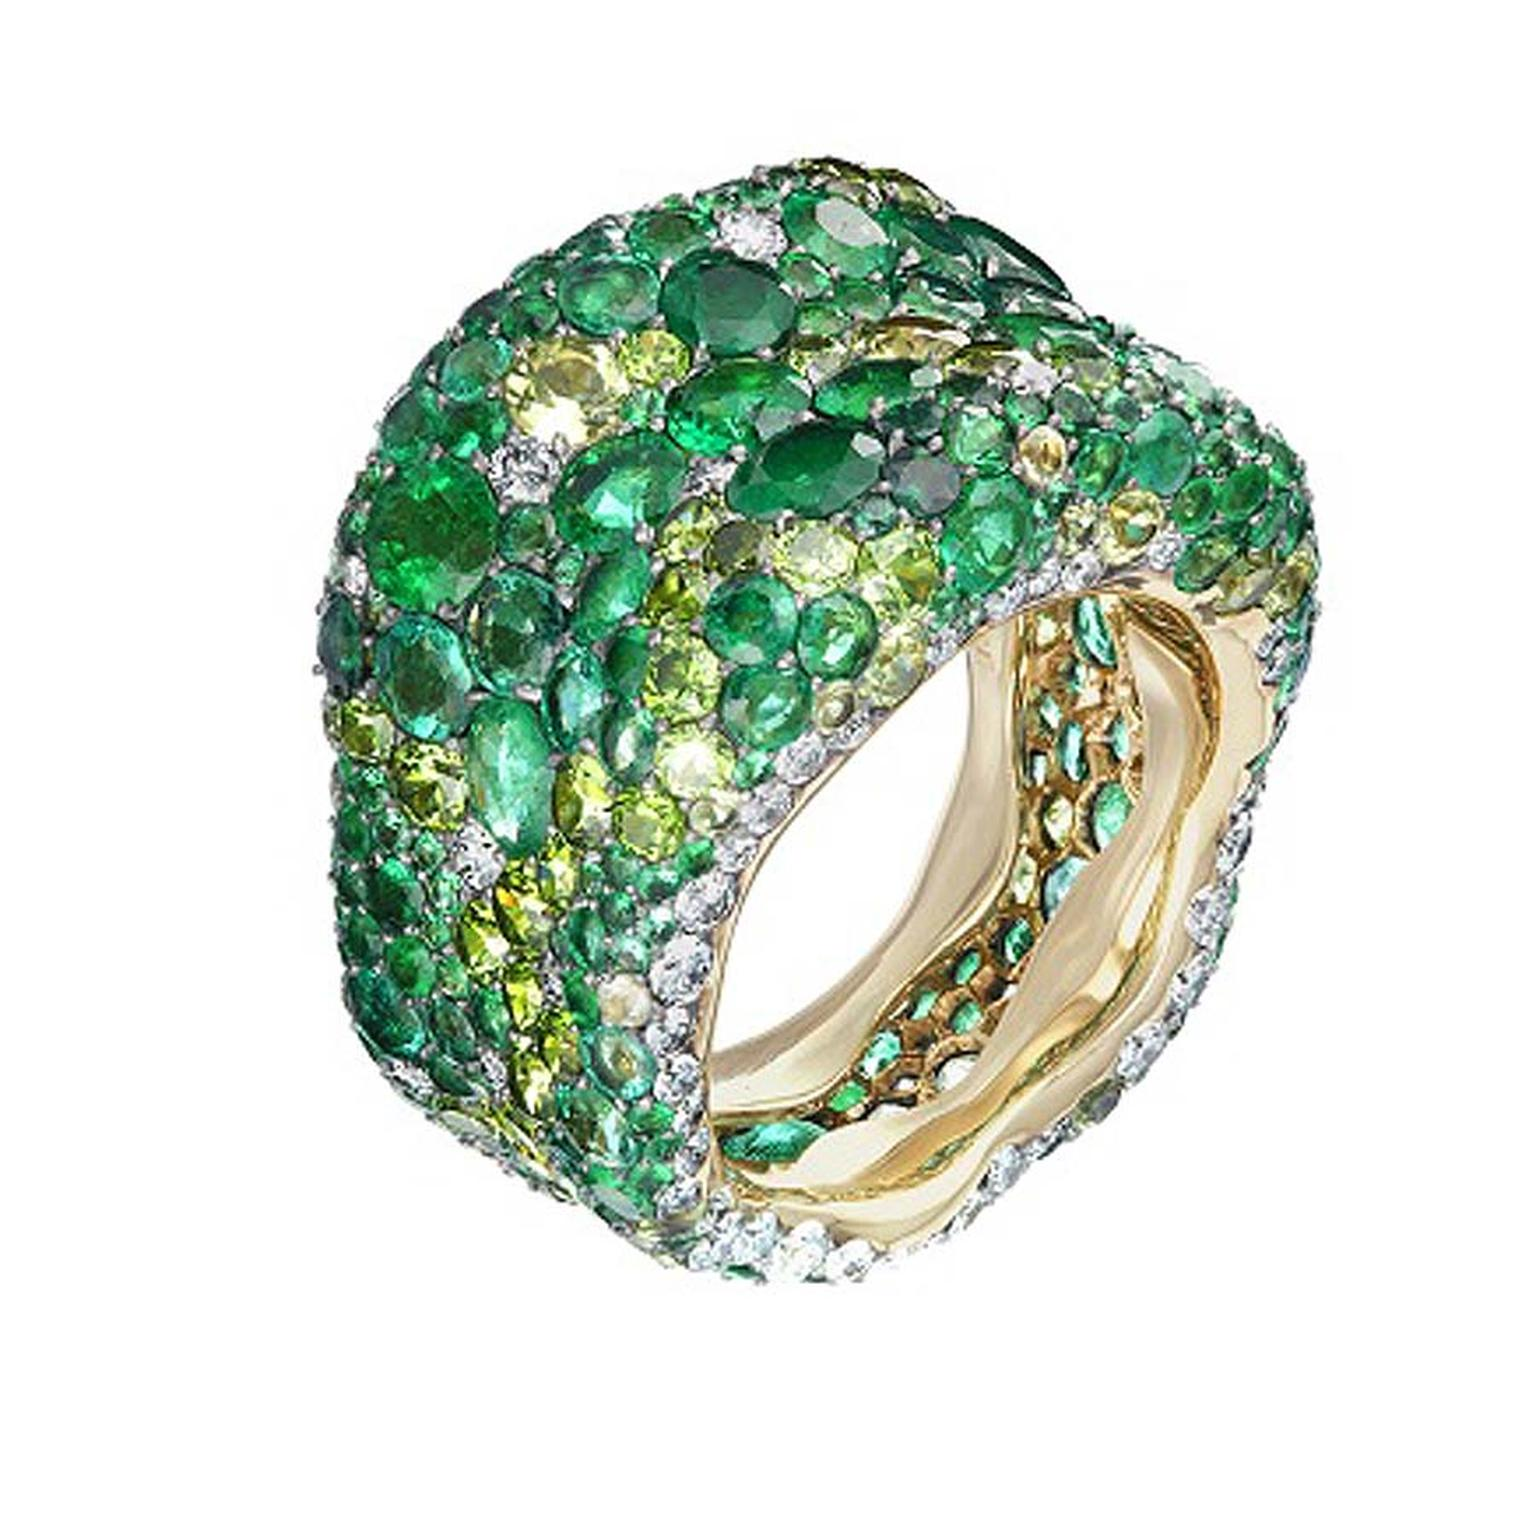 FabergeEmotionrings001.jpg